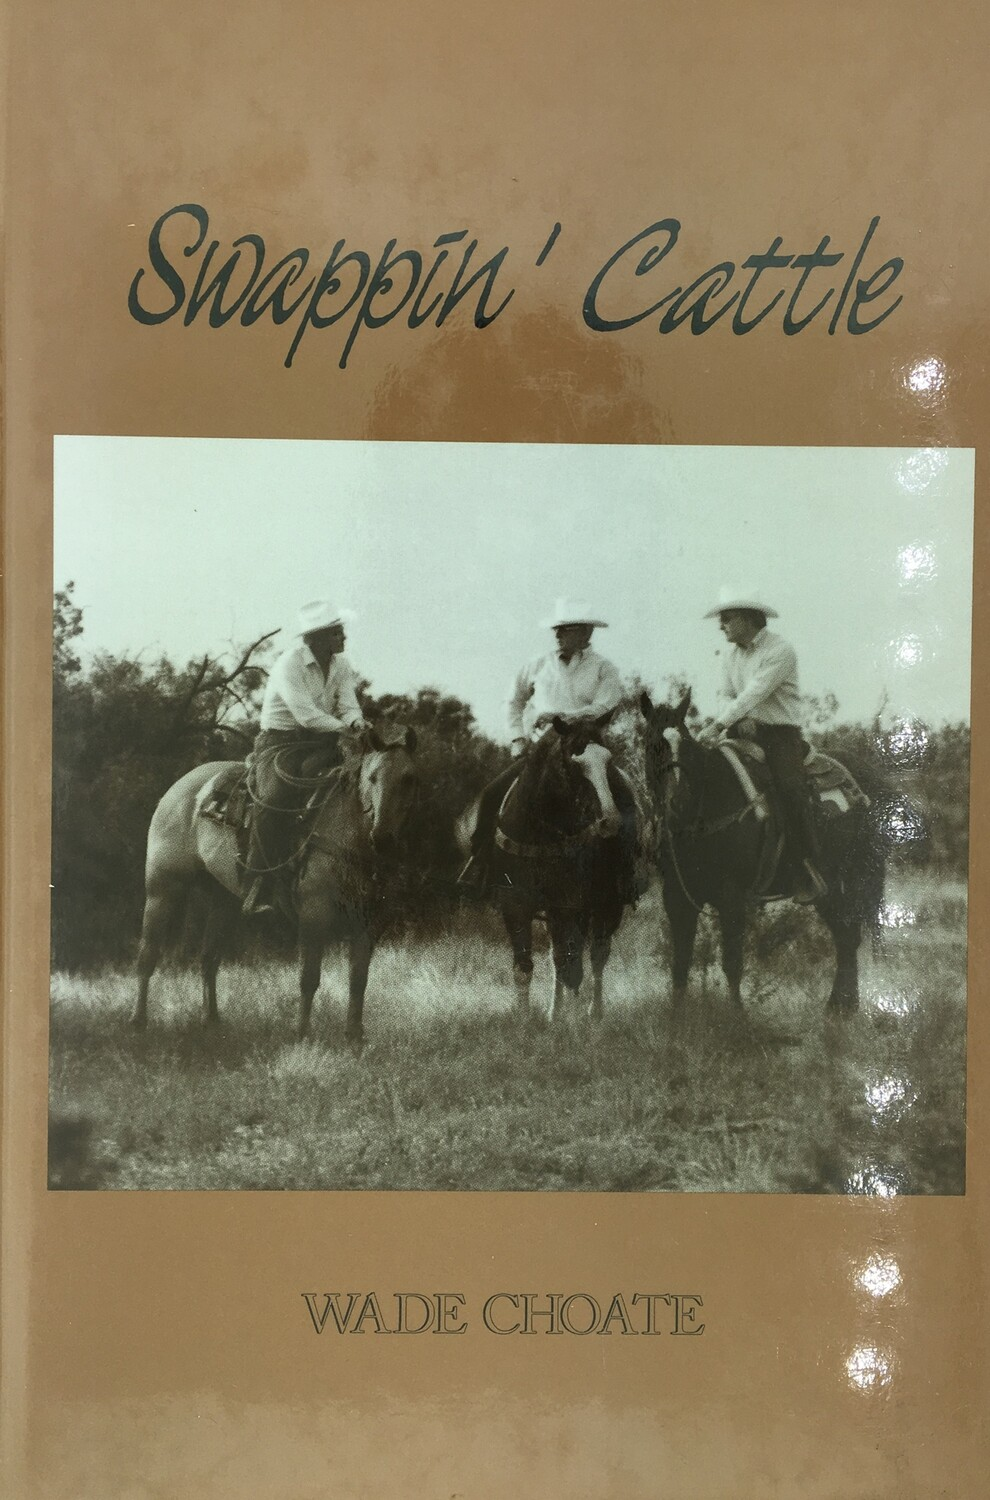 Swappin' Cattle